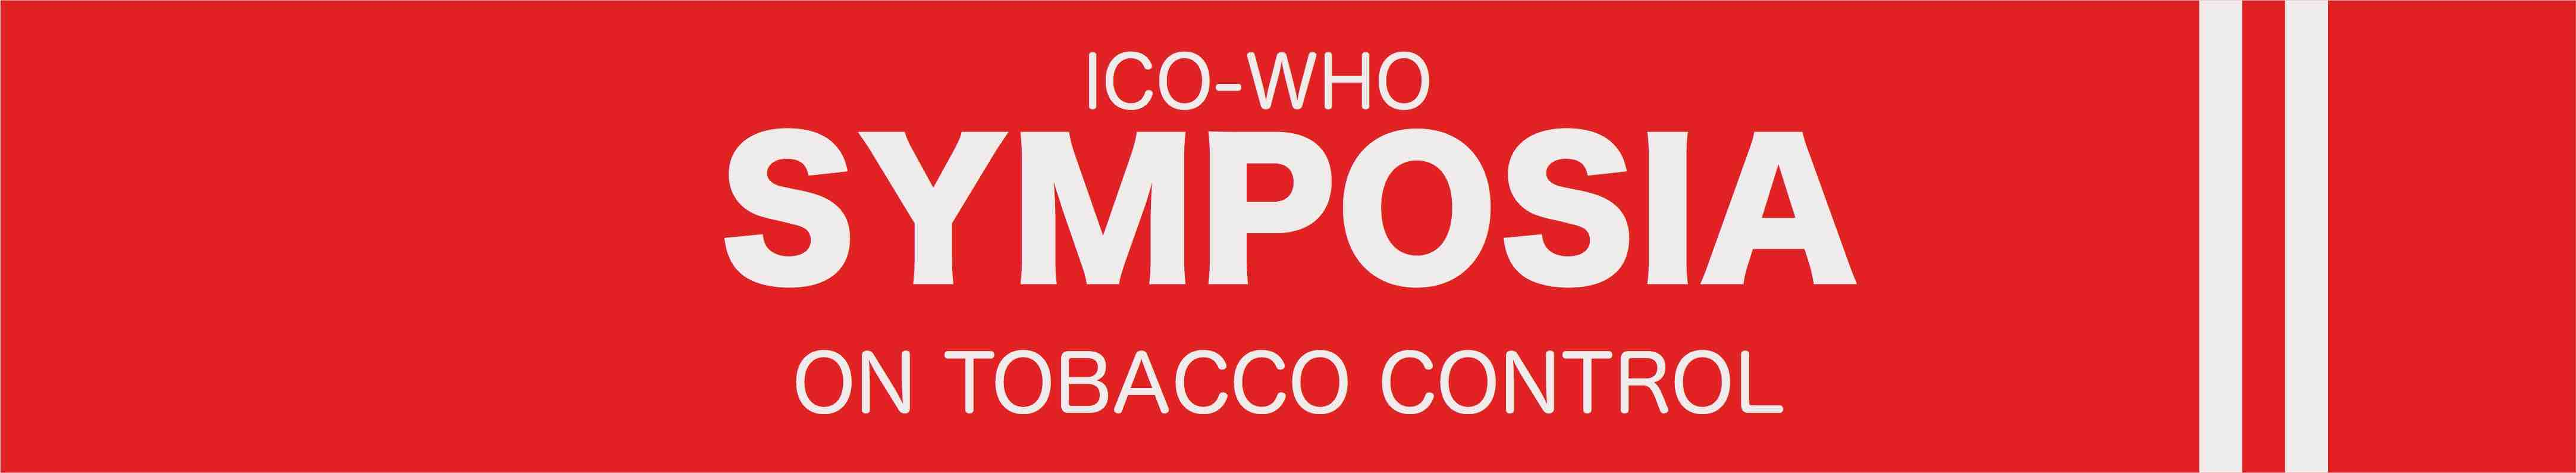 ICO-WHO SYMPOSIA